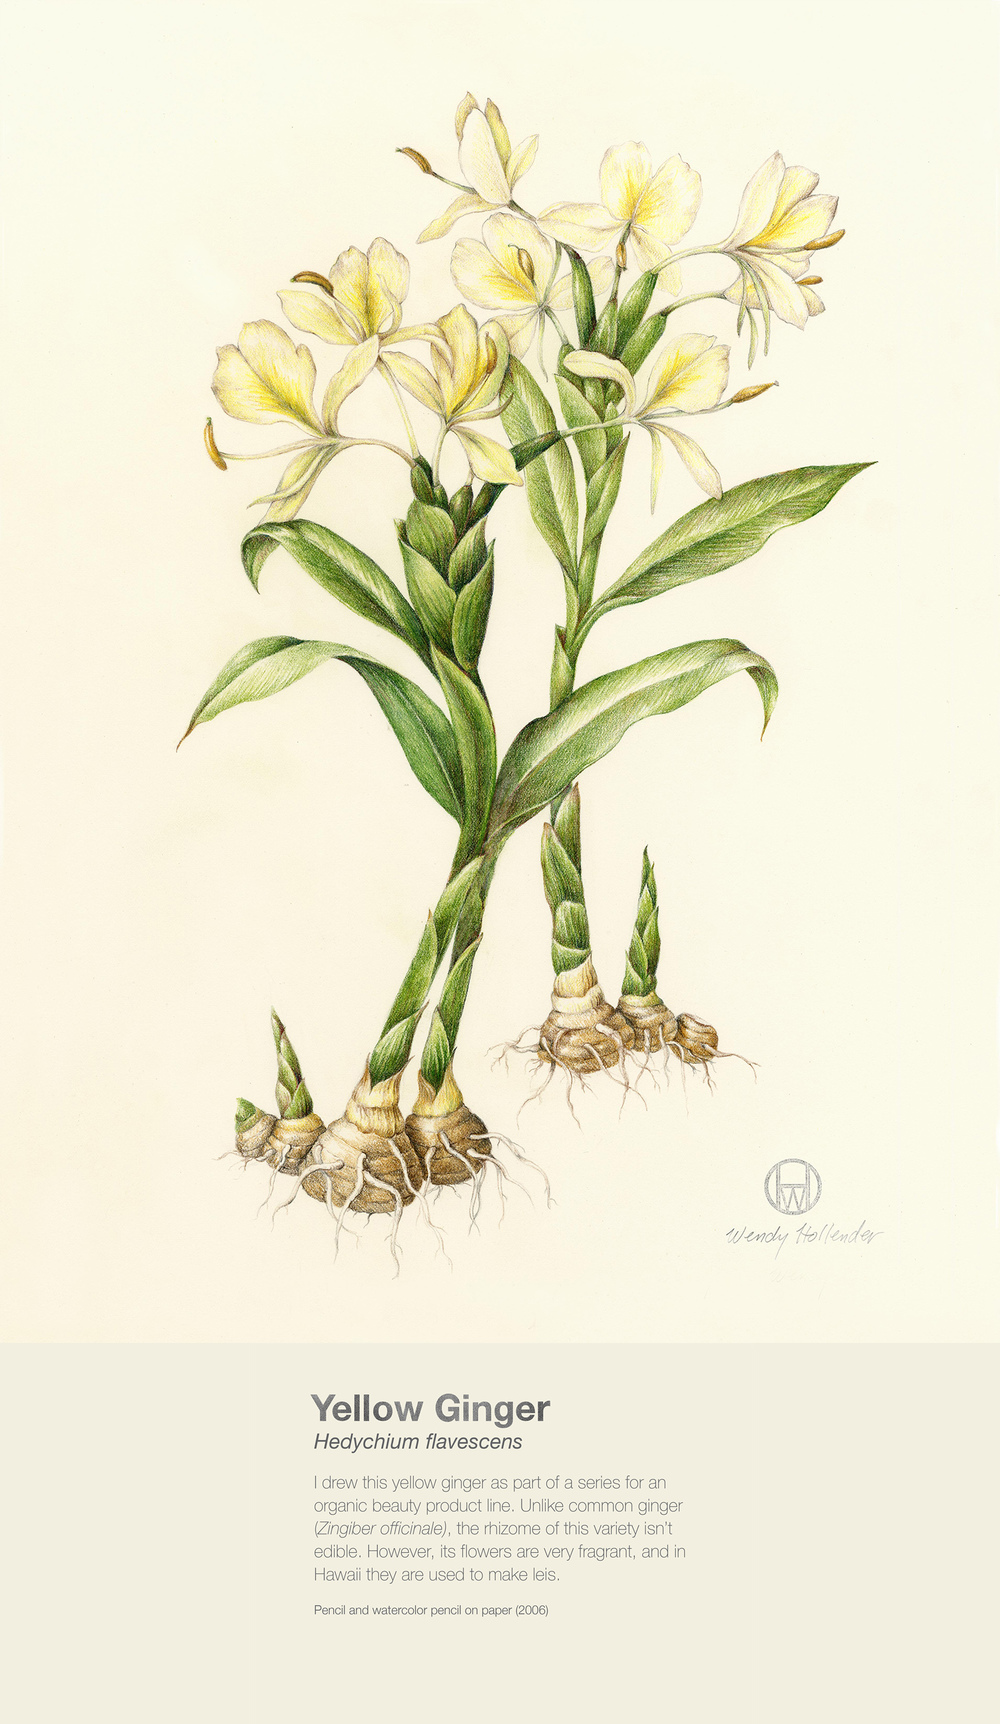 Yellow Ginger - Hedychium flavescens